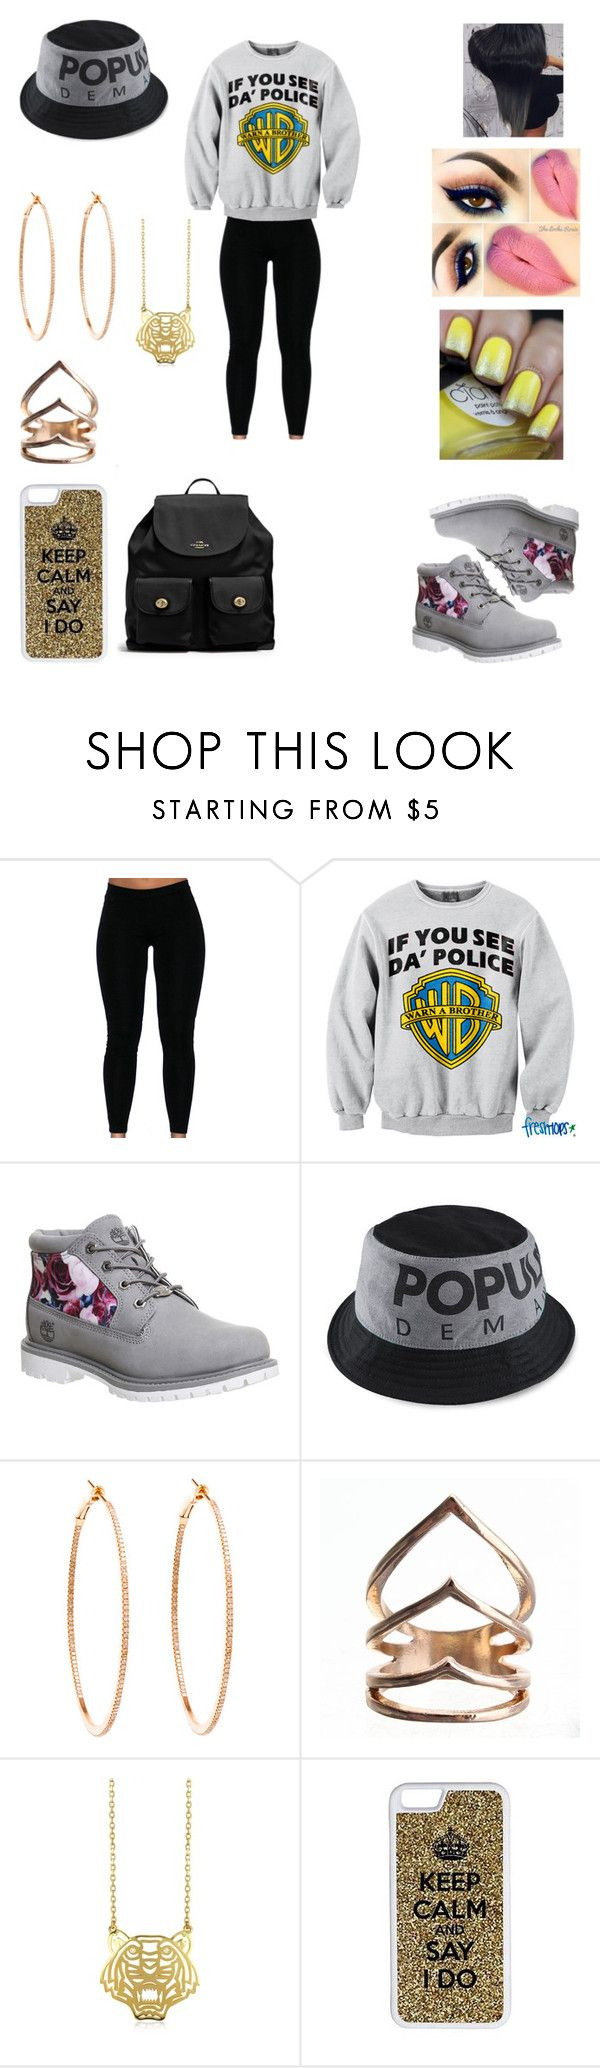 """""""Untitled #61"""" by cristrotter ❤ liked on Polyvore featuring POLICE, Timberland, Rosa de la Cruz, Kenzo, CellPowerCases and Coach"""